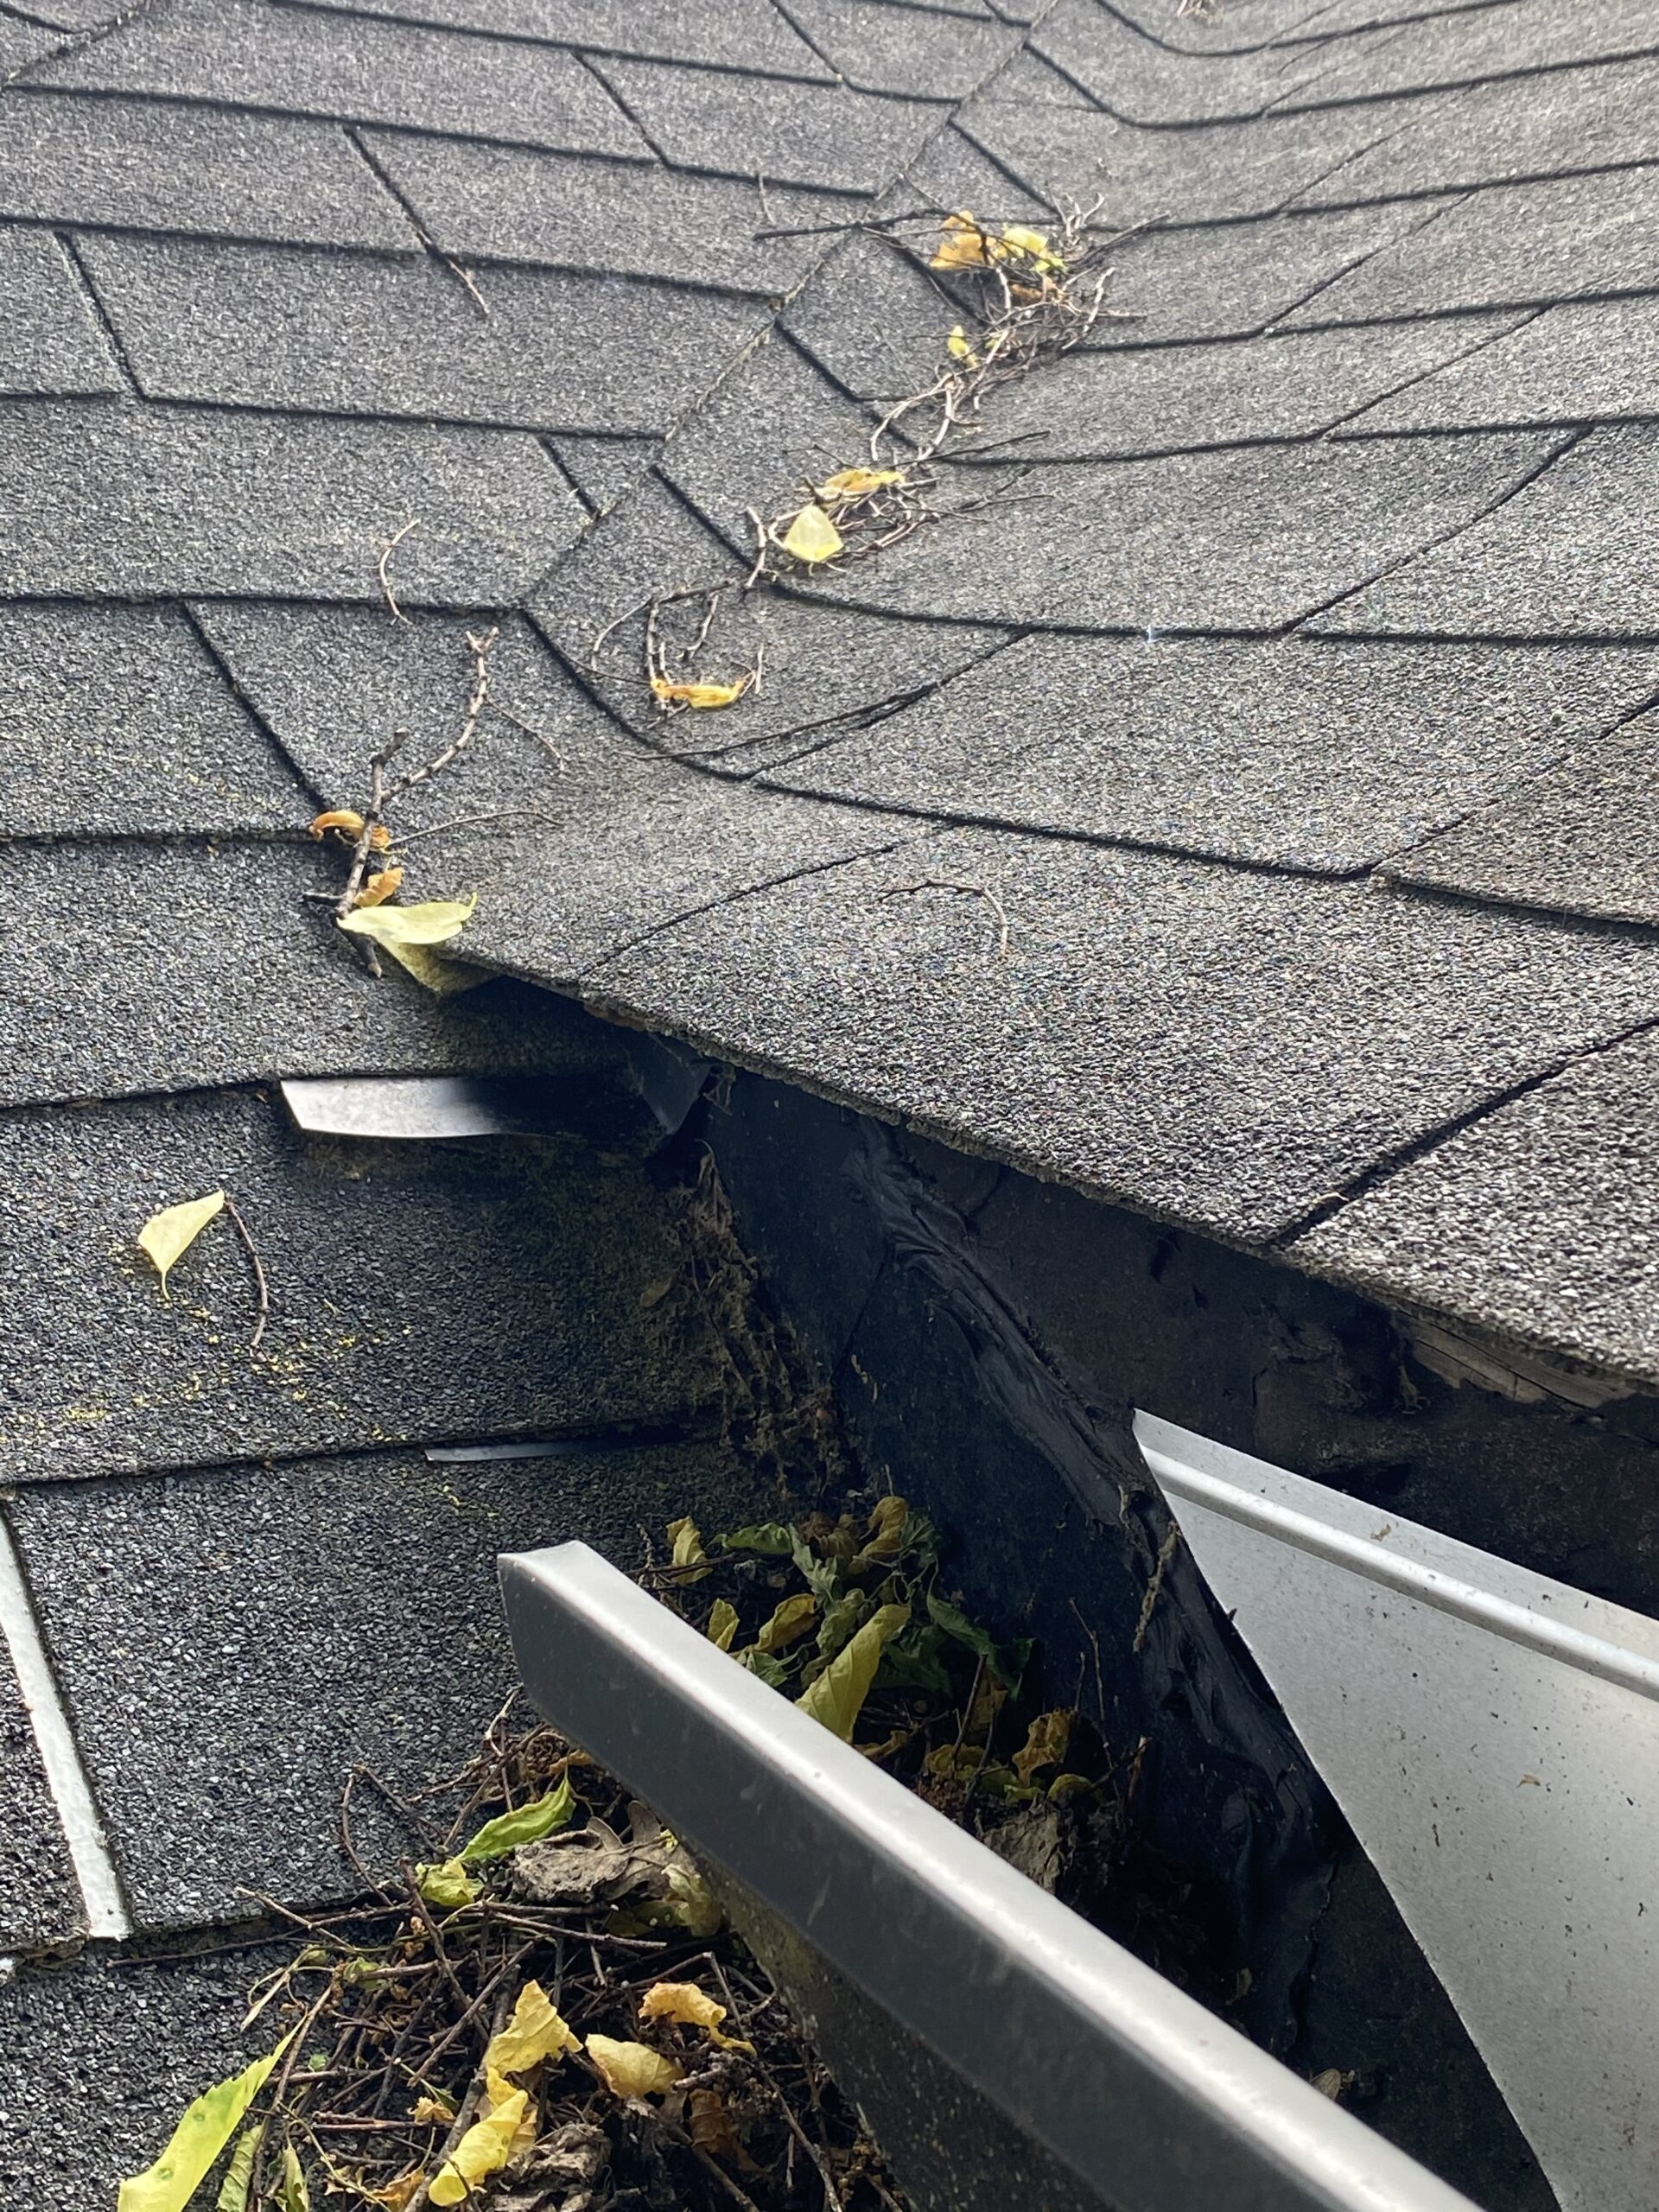 This is a picture of the end of a gutter that empties onto the roof